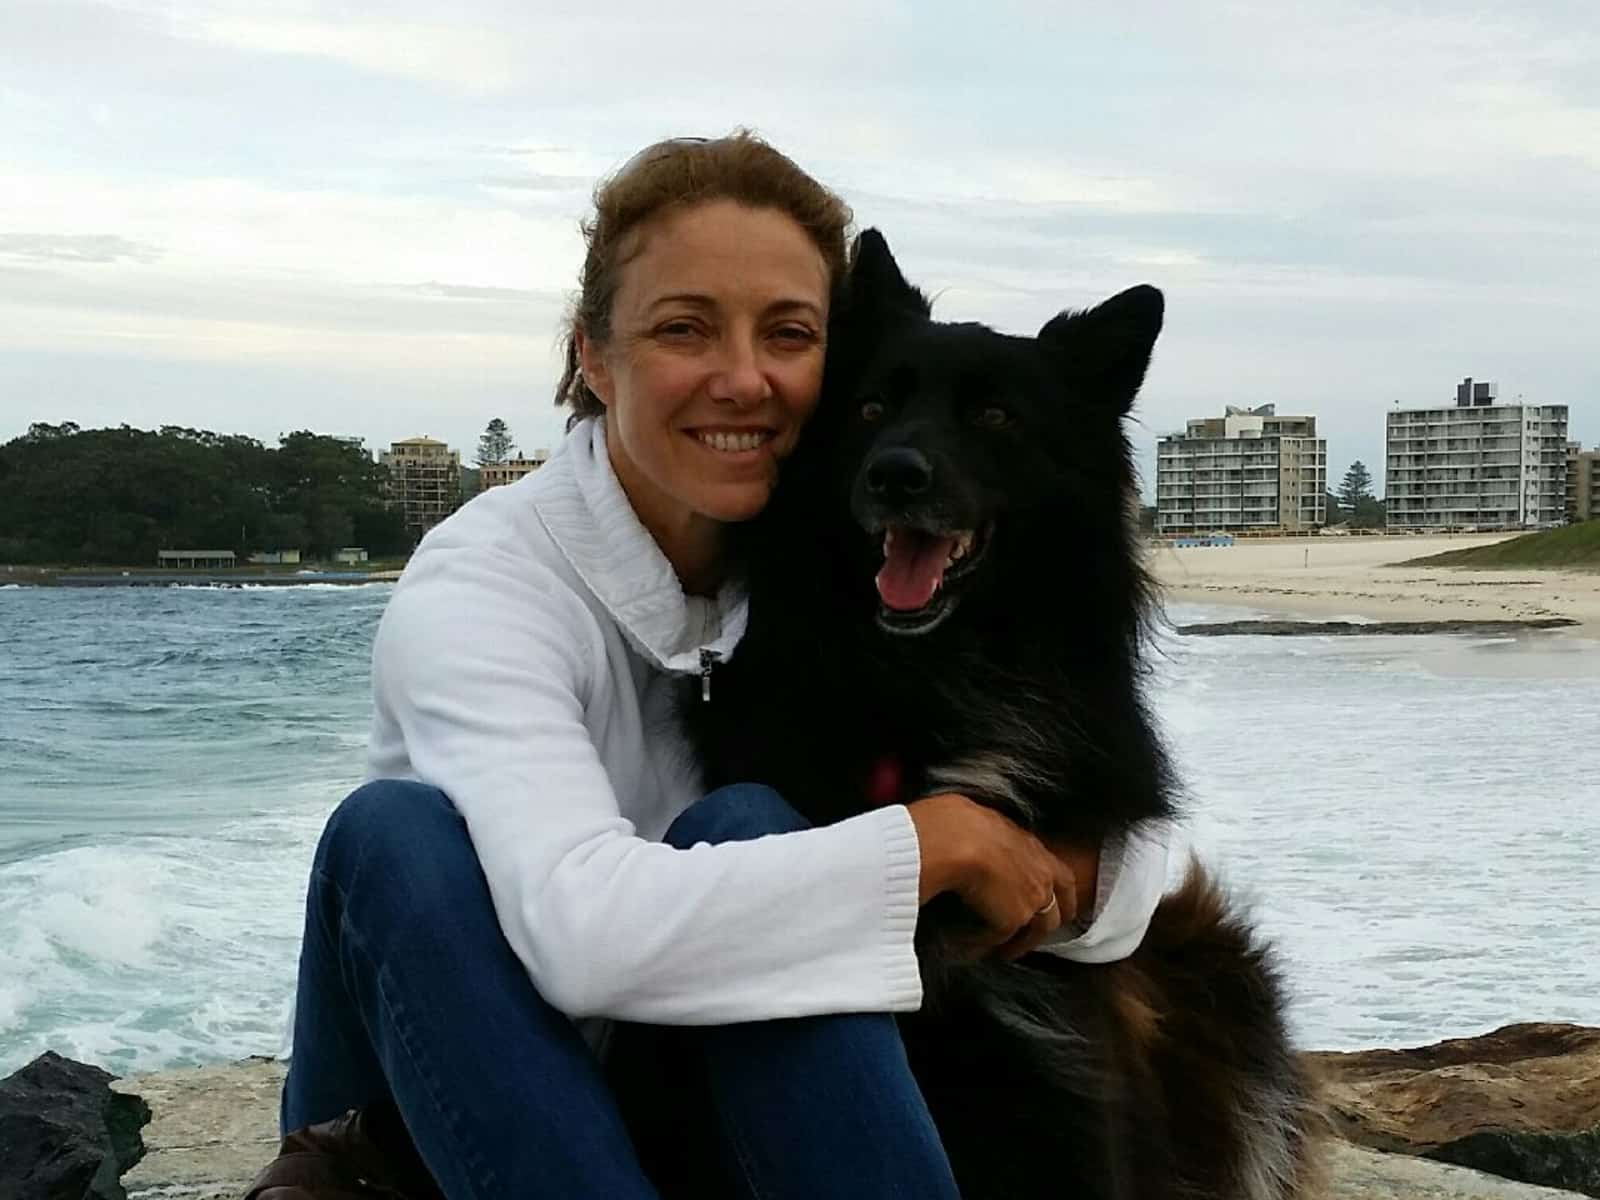 Justine from Fairlight, New South Wales, Australia